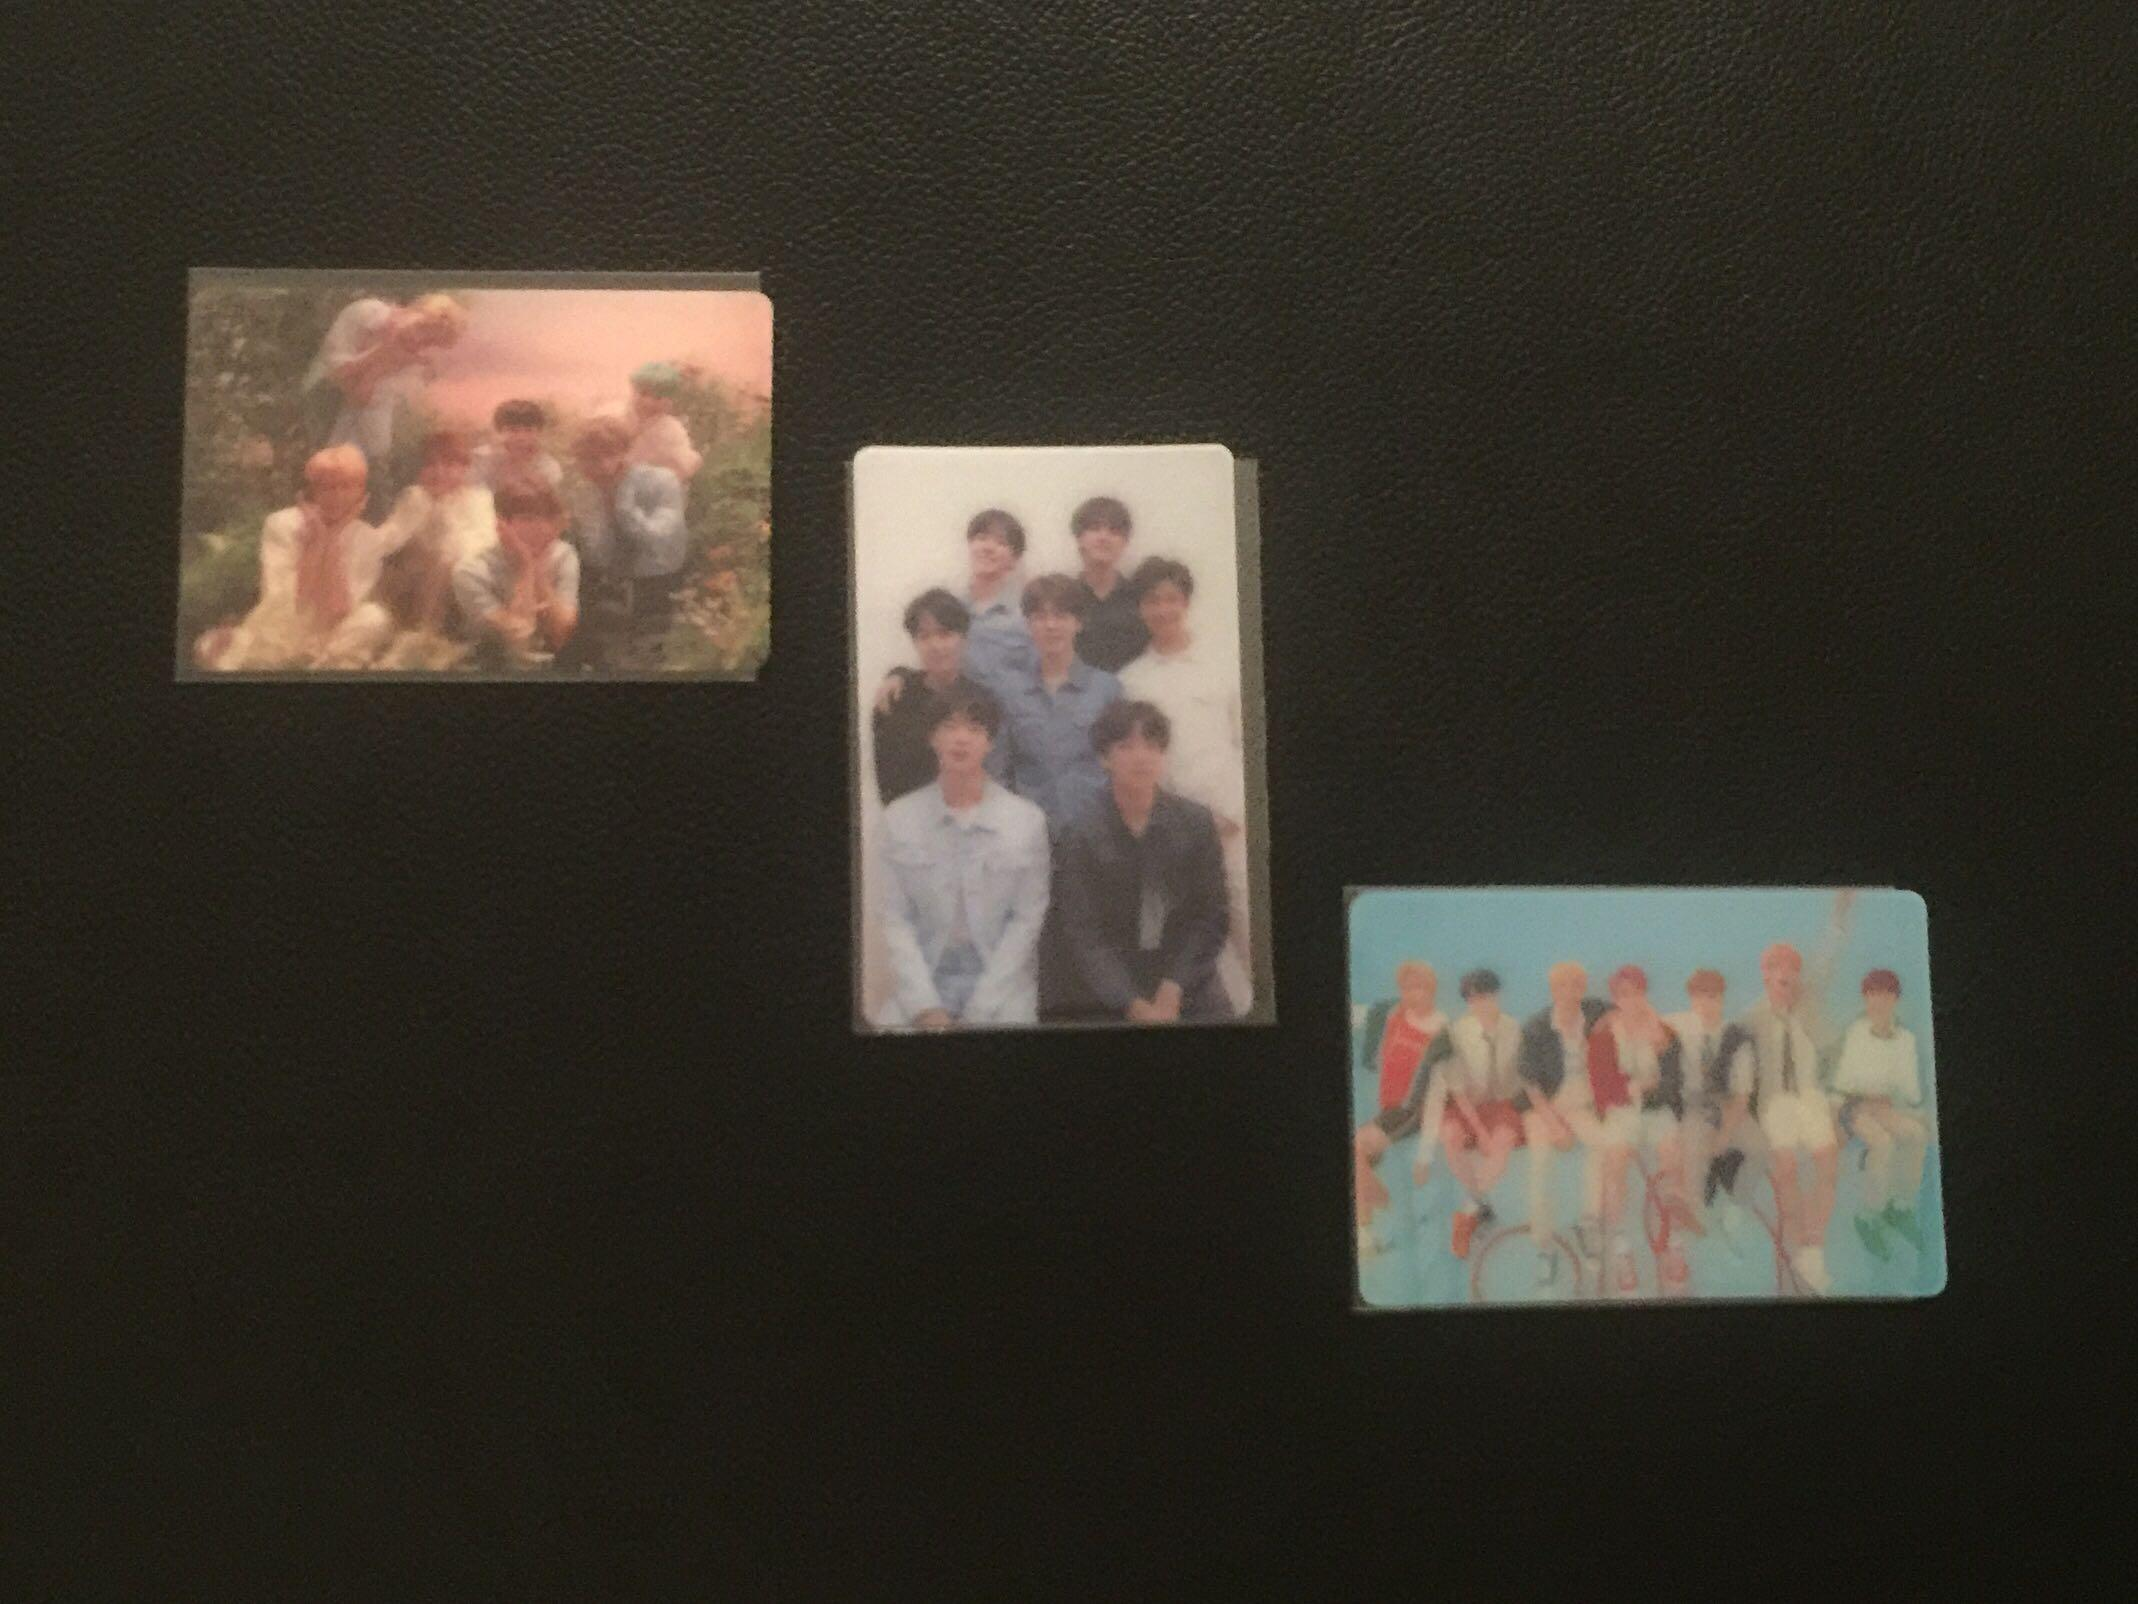 bts love yourself special photocards 1543847409 0ef541c2 progressive